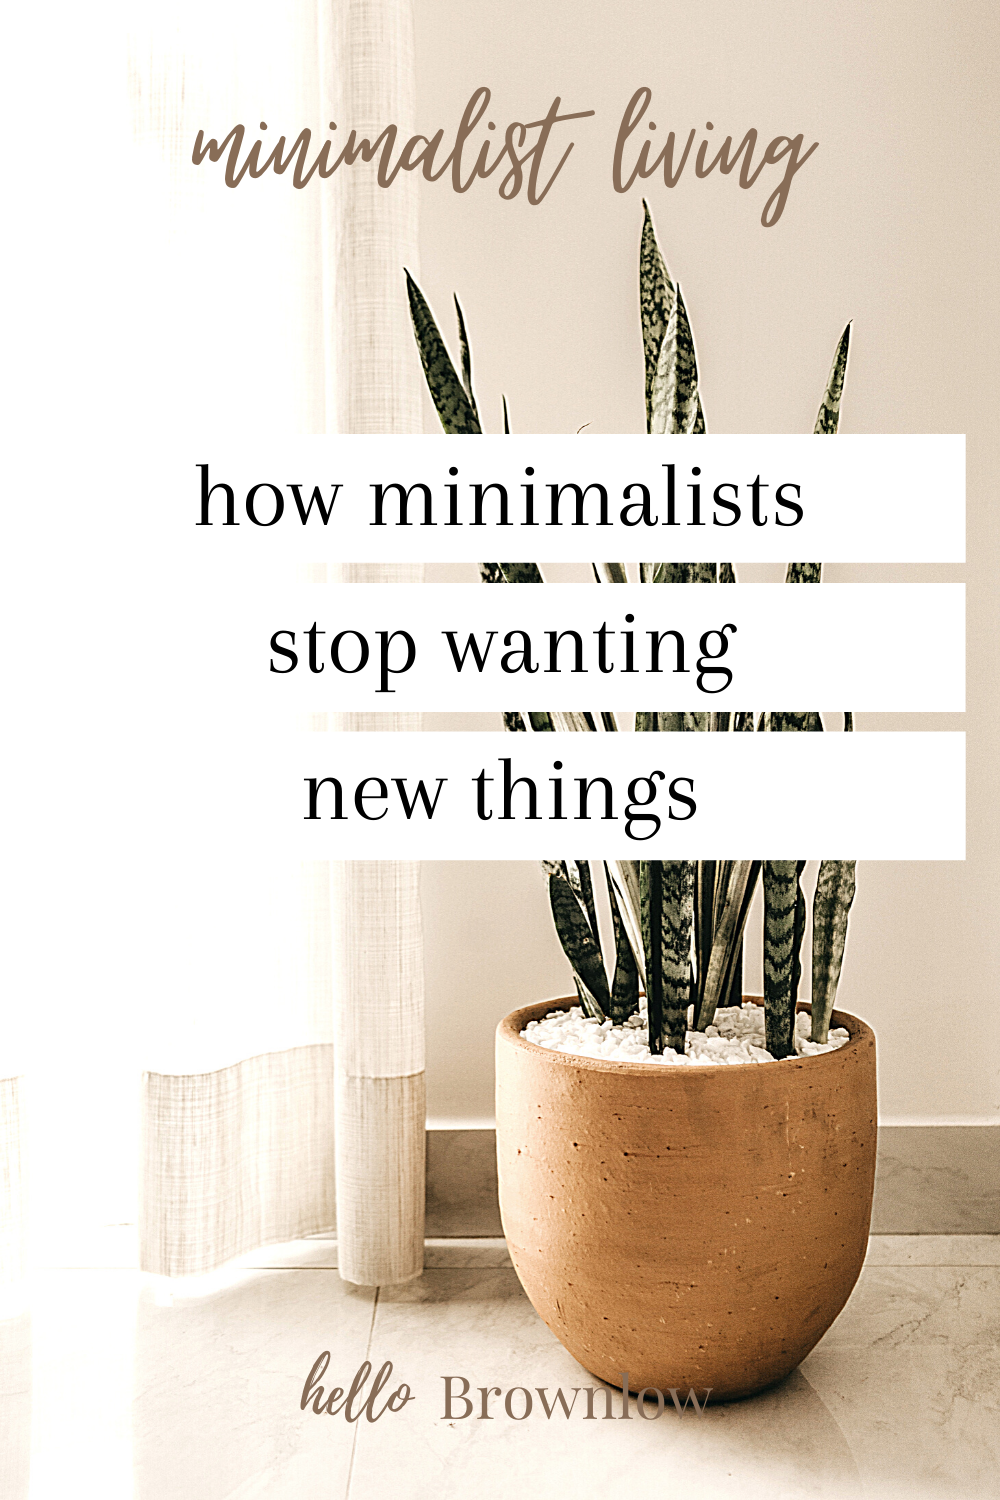 Minimalism is not only living with less, but bringing in less too. Learn how minimalists stop wanting new things and quiet the voice of materialism.  #minimalism #minimalistliving #minimalist